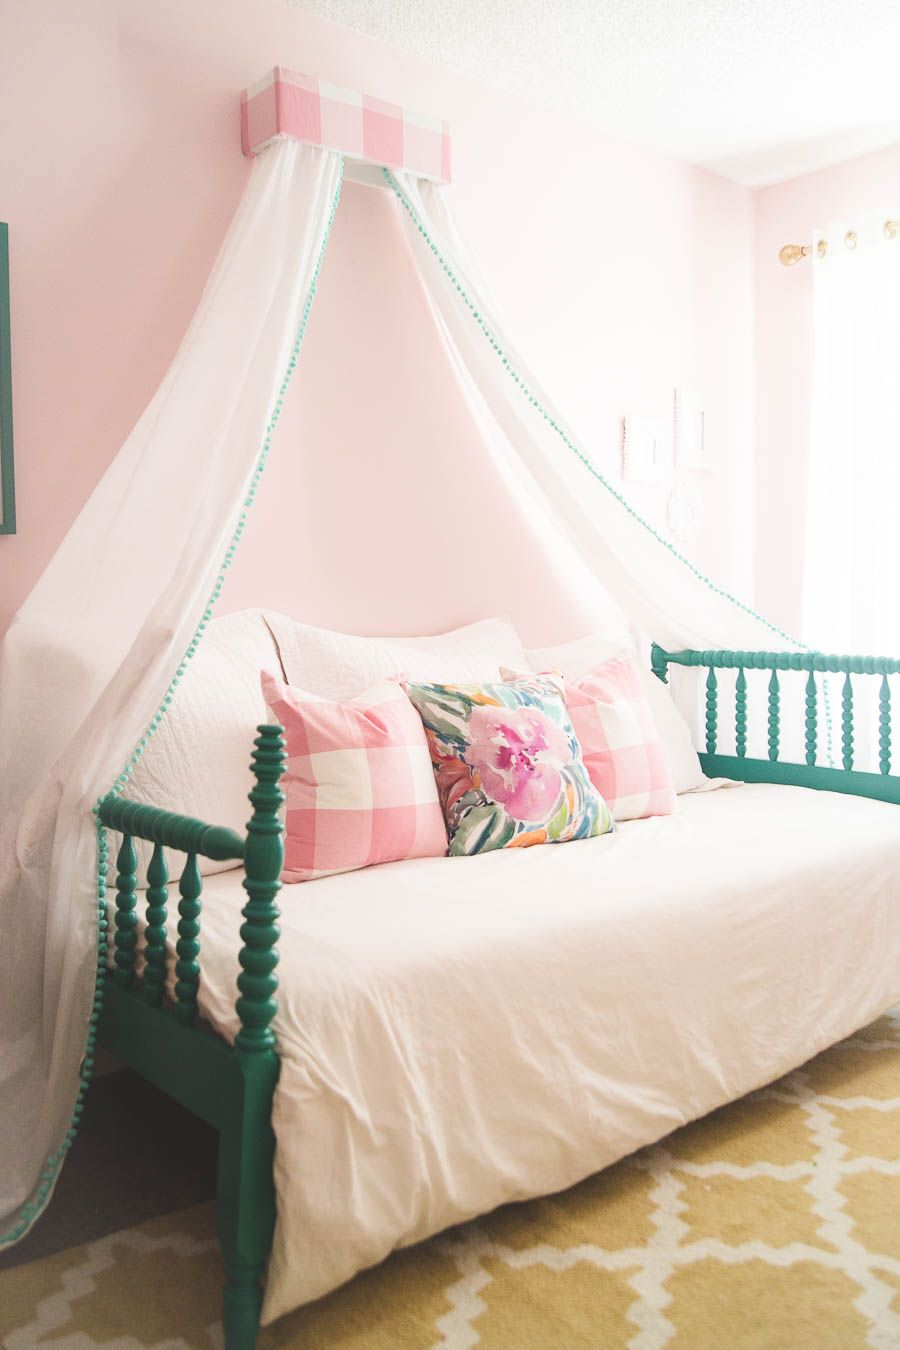 Room Makeover And A Box Bed: Decorating A Room Fit For A Princess